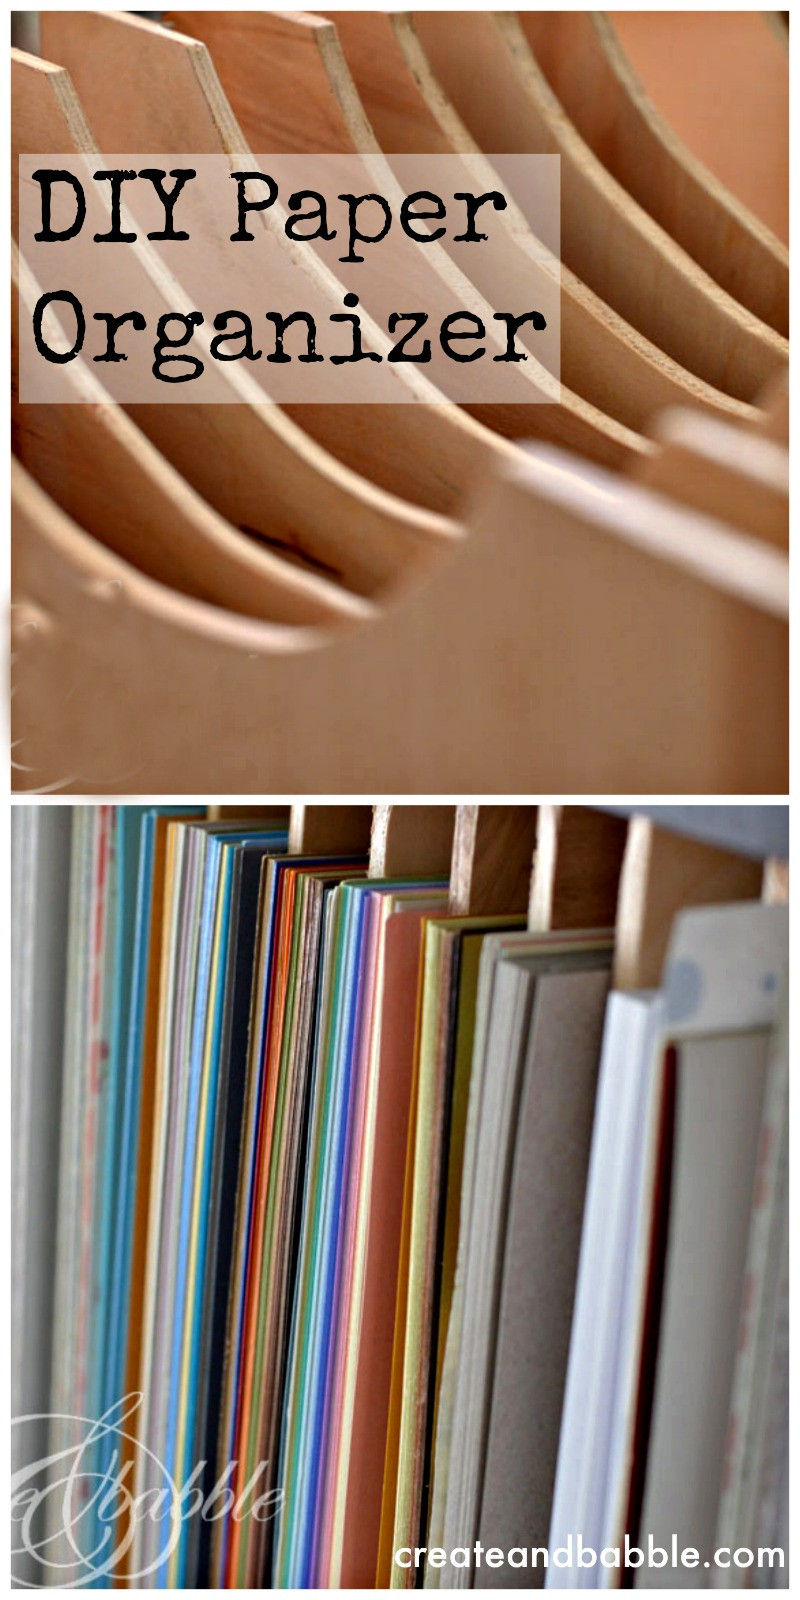 Best ideas about Paper Organizer DIY . Save or Pin DIY Paper Organizer for Cubbie Storage Units Now.